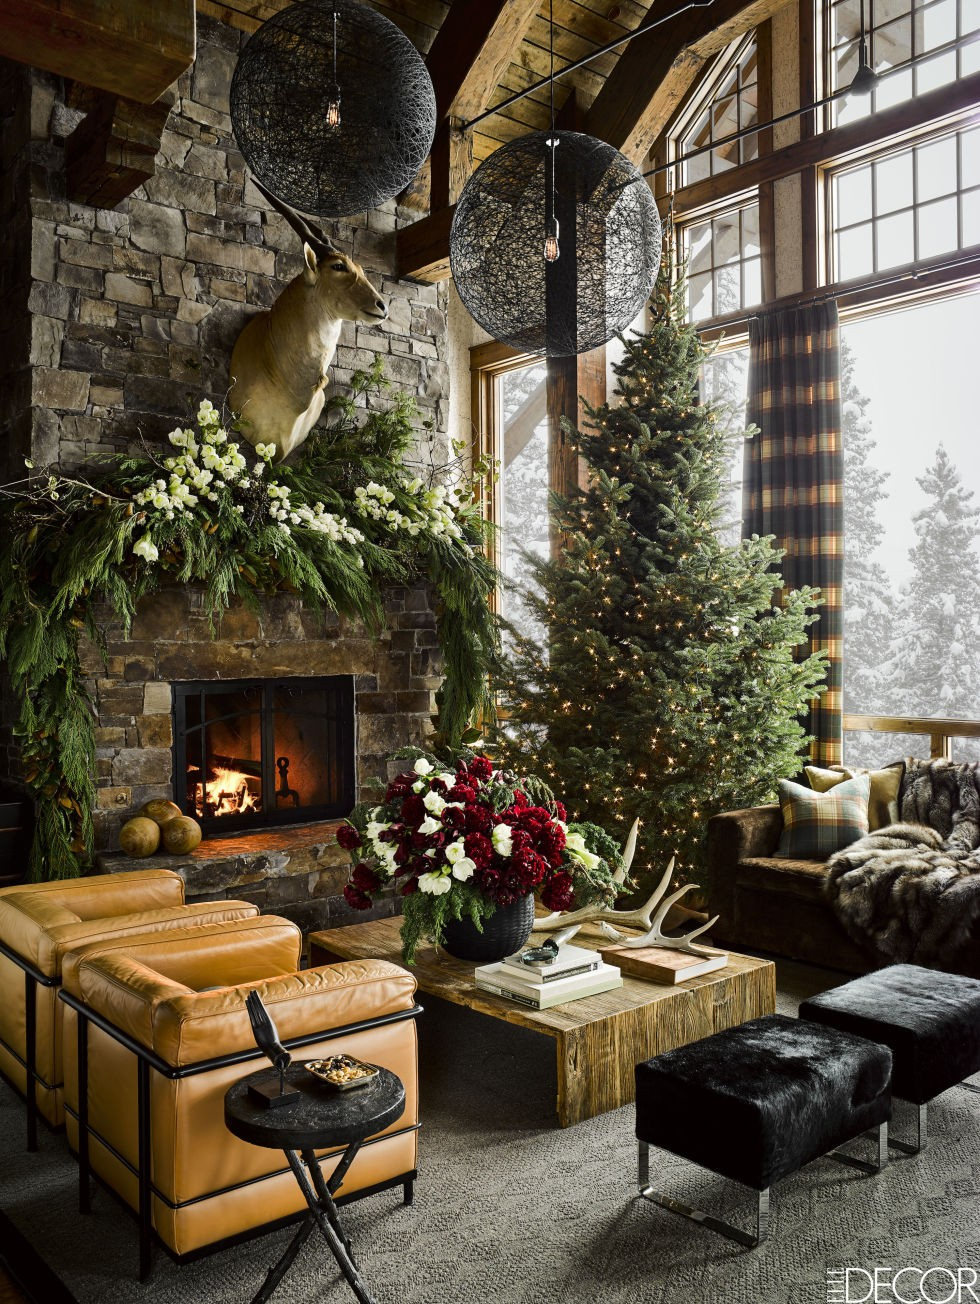 Montana Guest House All Decked Up in Christmas | Christmas decoration is already in the shop windows and everyone is getting into the Christmas spirit. #interiordesign #christmasdecor #homedecor #decoration #seasondecor #winterinspirations